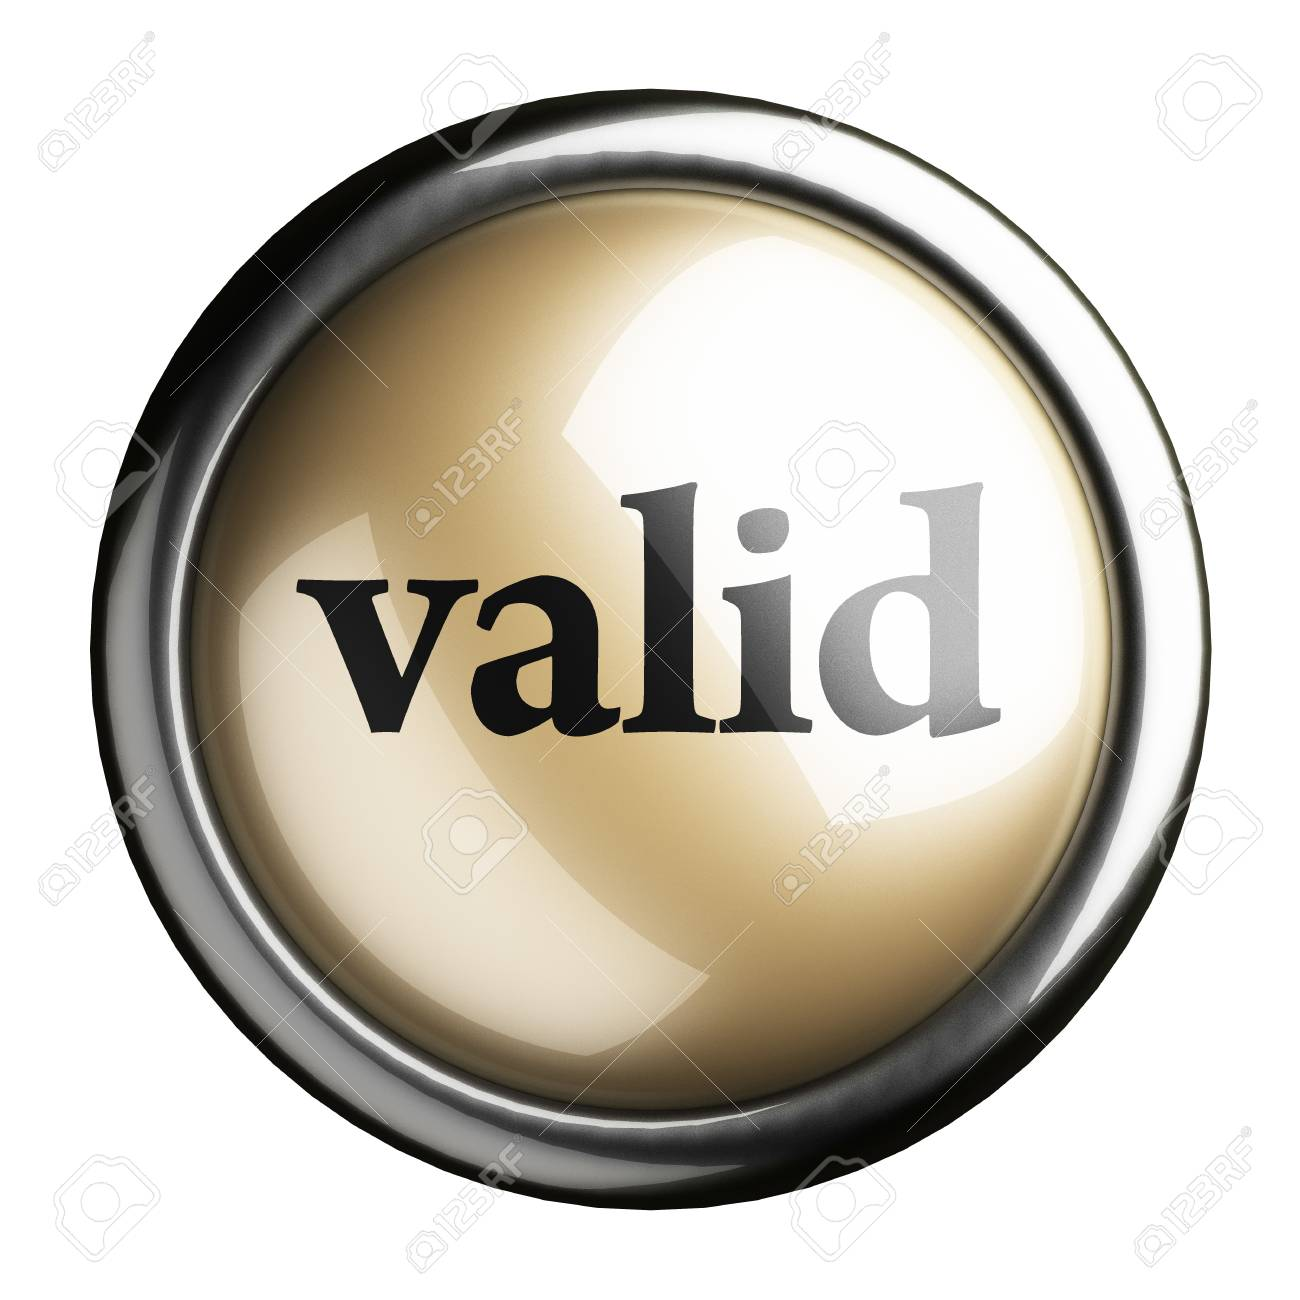 Word on the button Stock Photo - 17748045